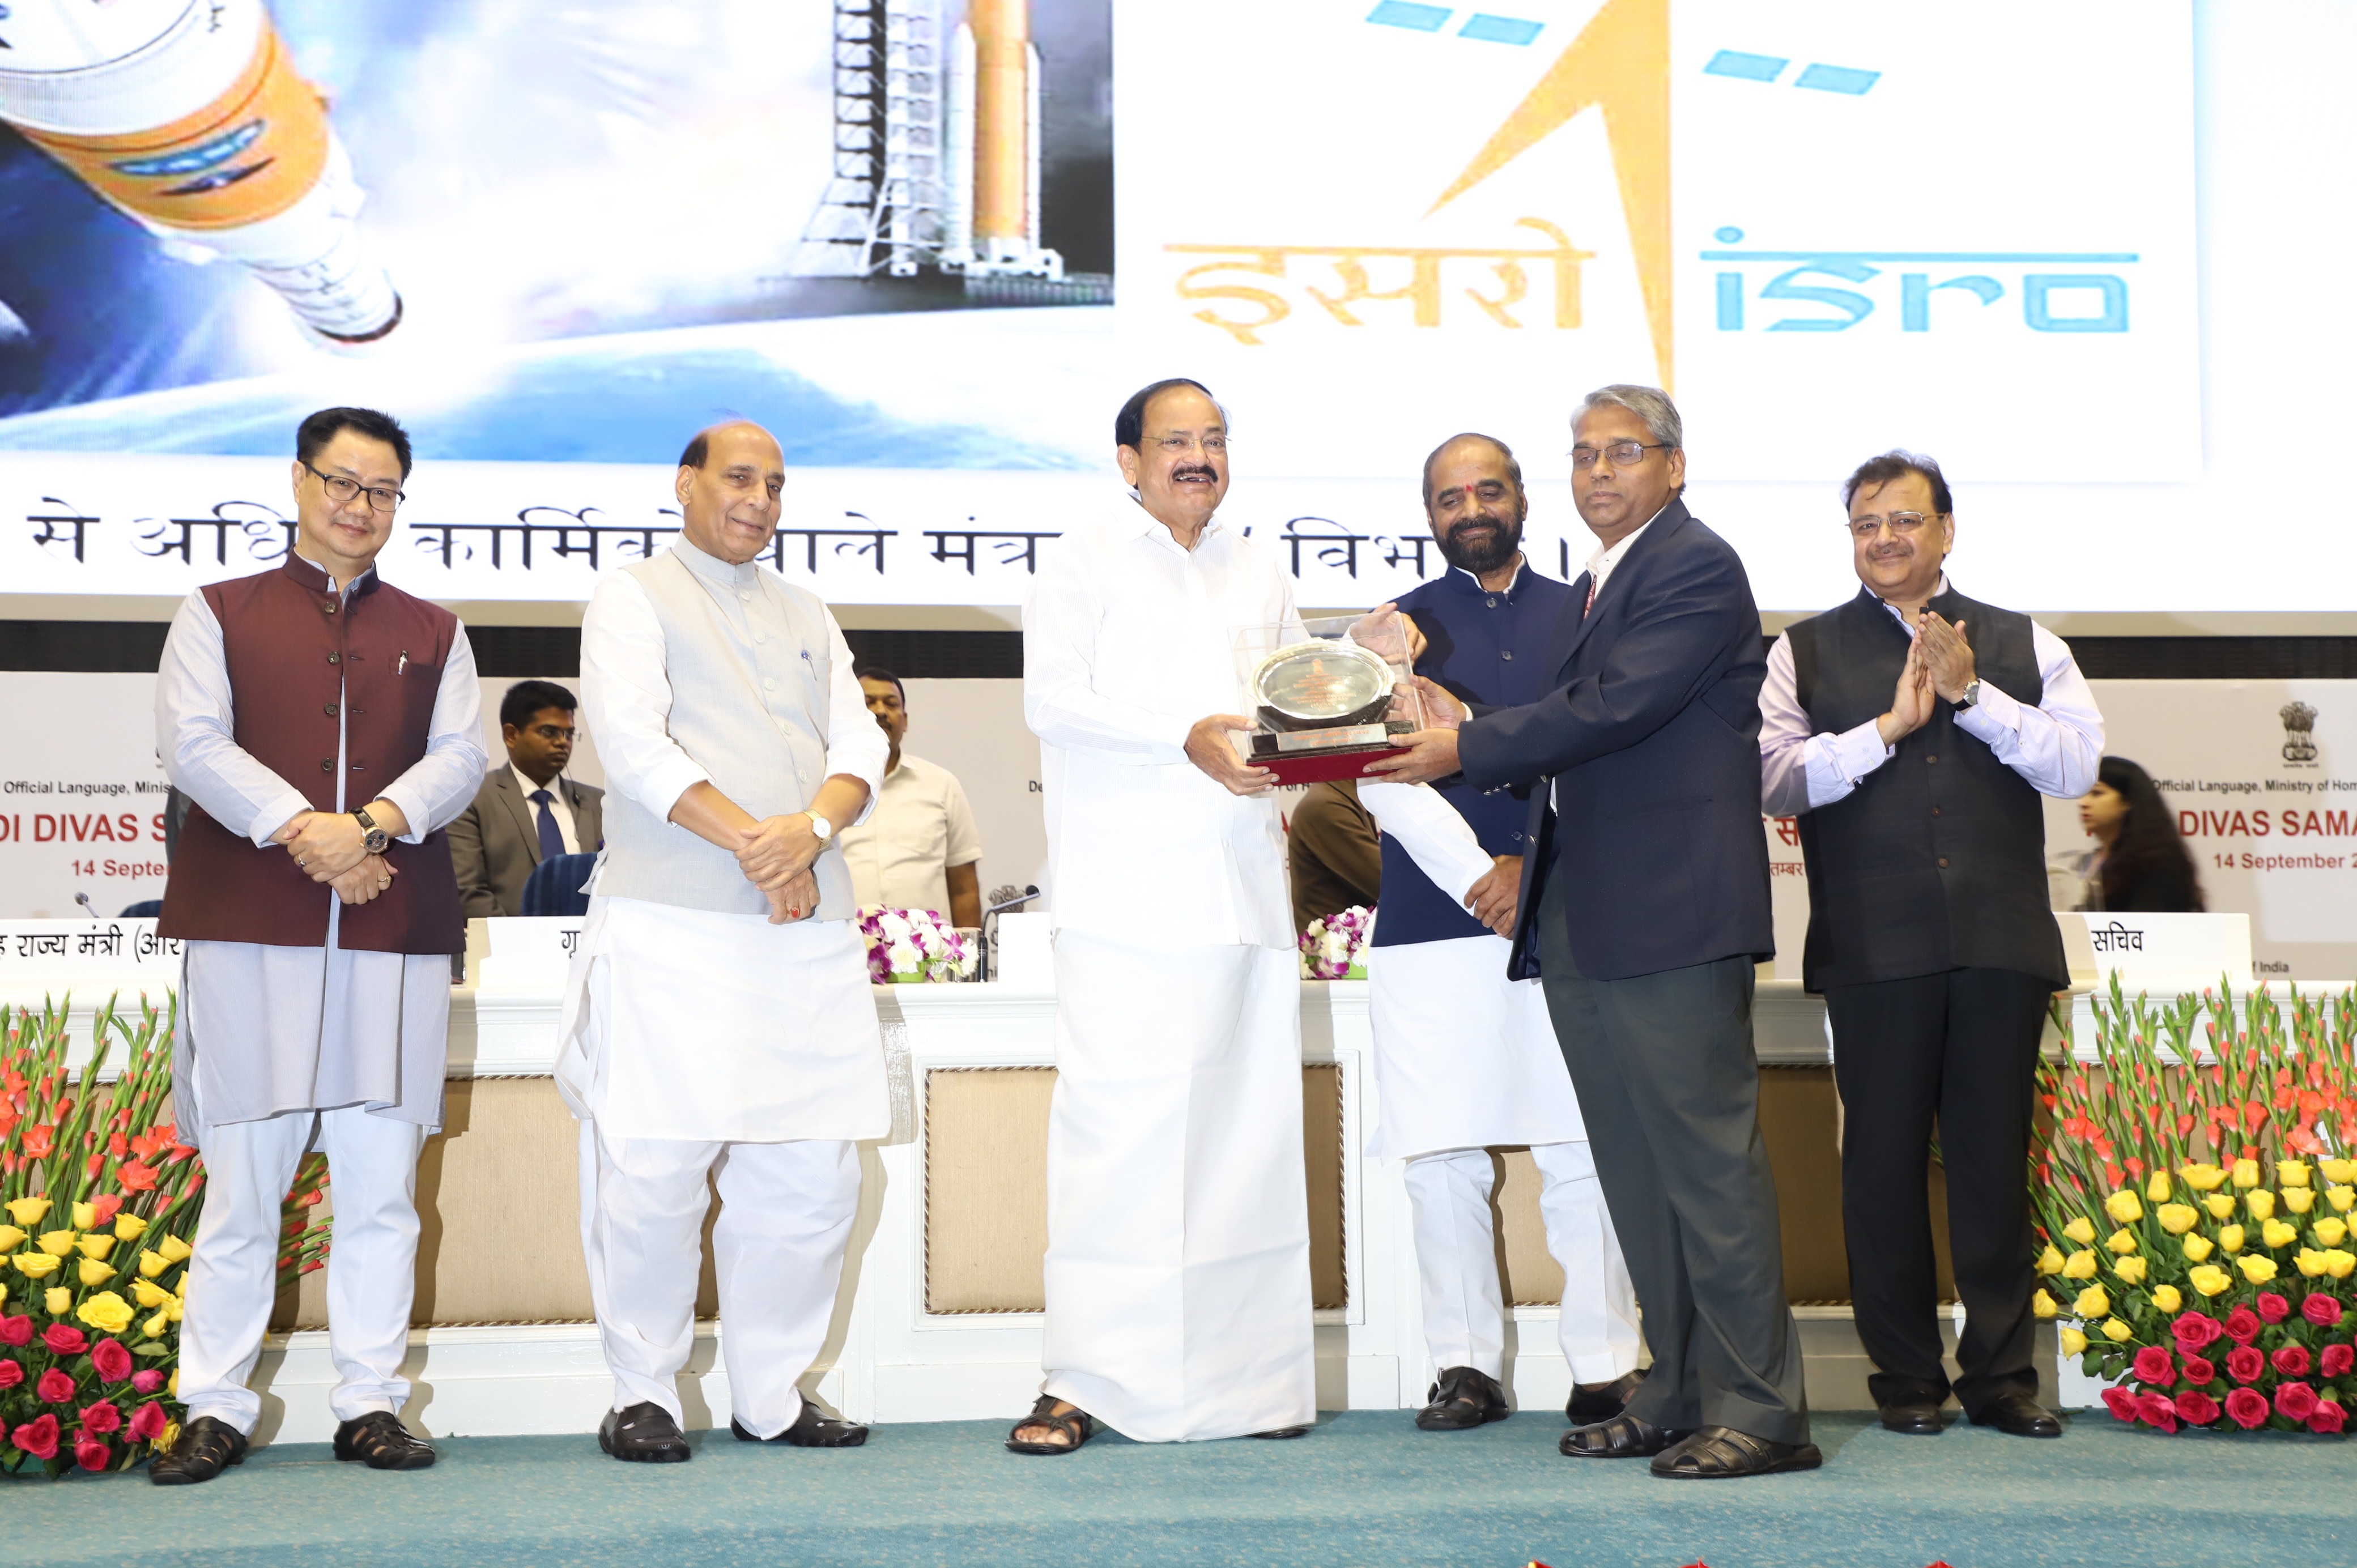 ISRO Conferred with Rajbhasha Kirti Award 2018